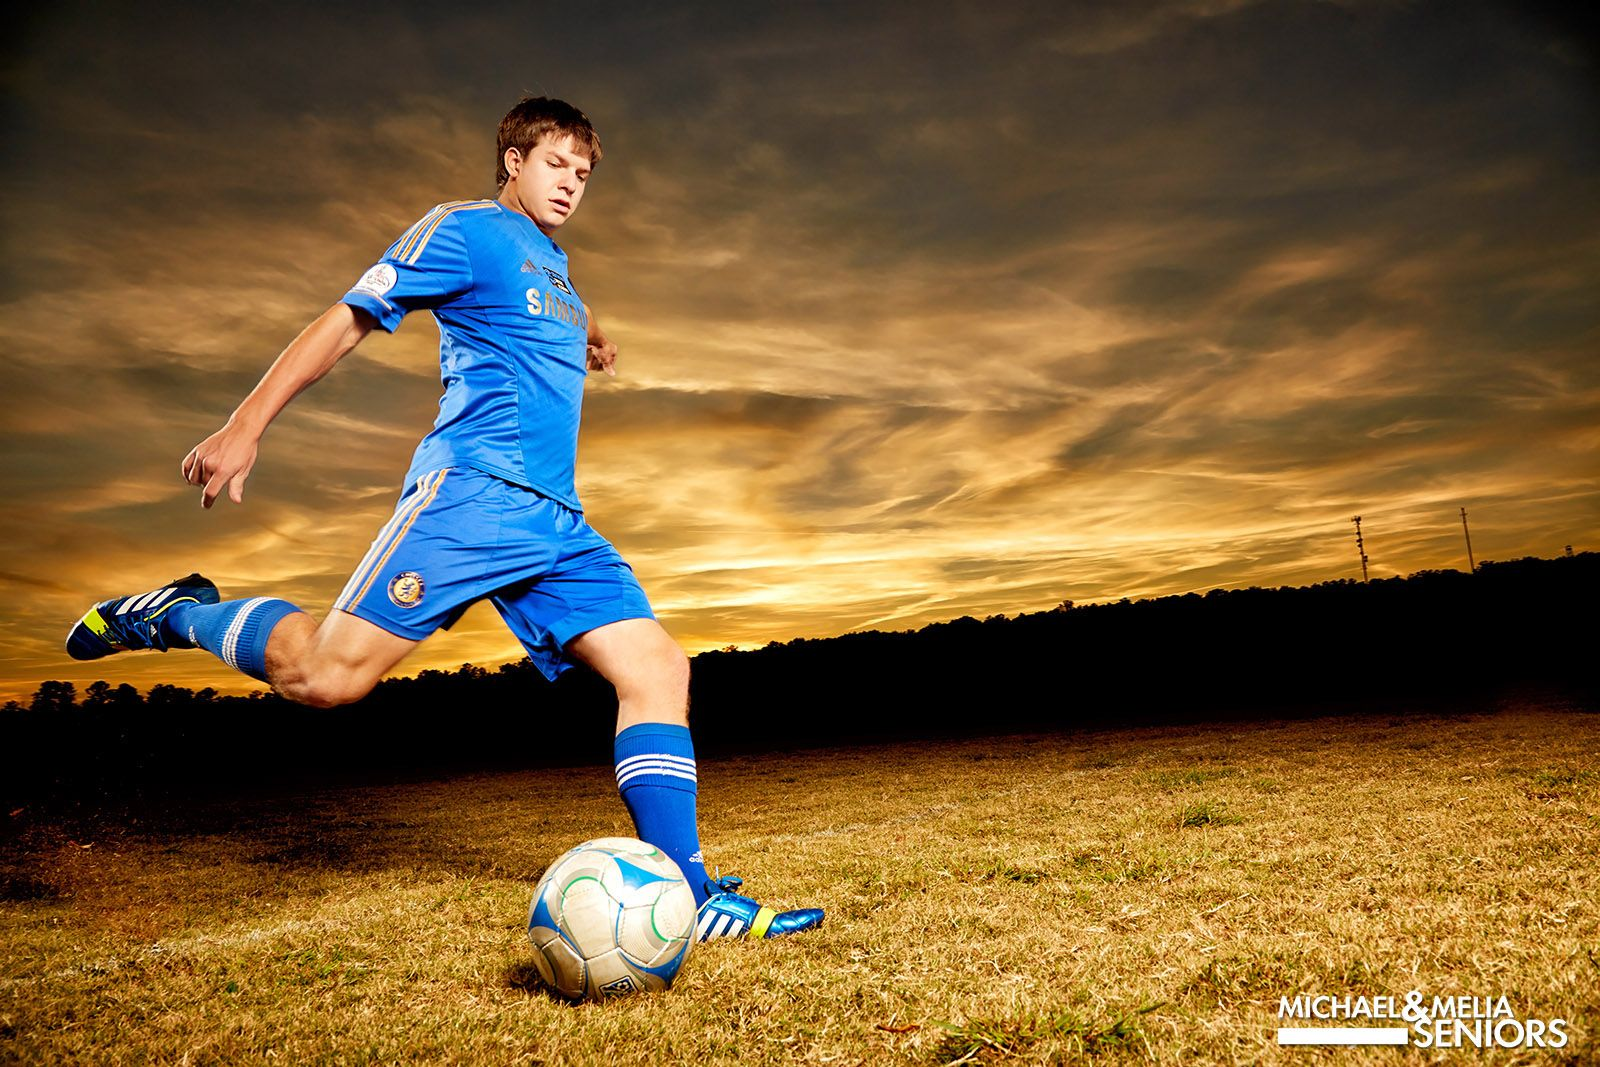 Soccer Senior Picture Sports Ideas for Guys